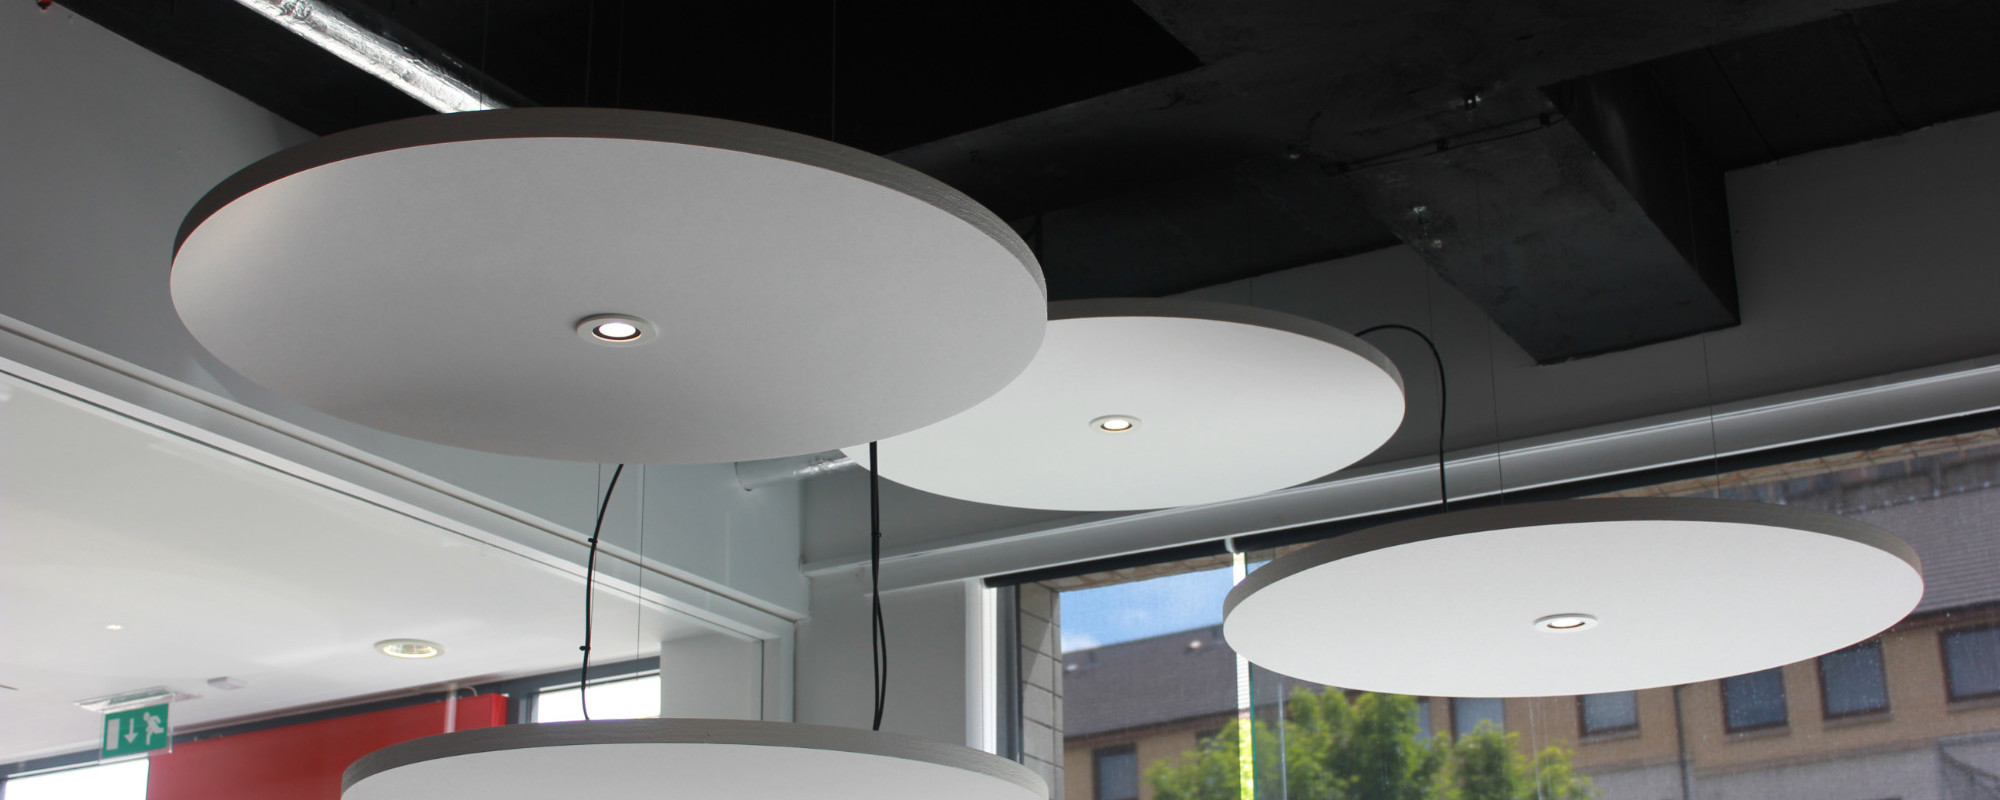 JHC Interiors - Suspended Ceiling & Partition Specialists